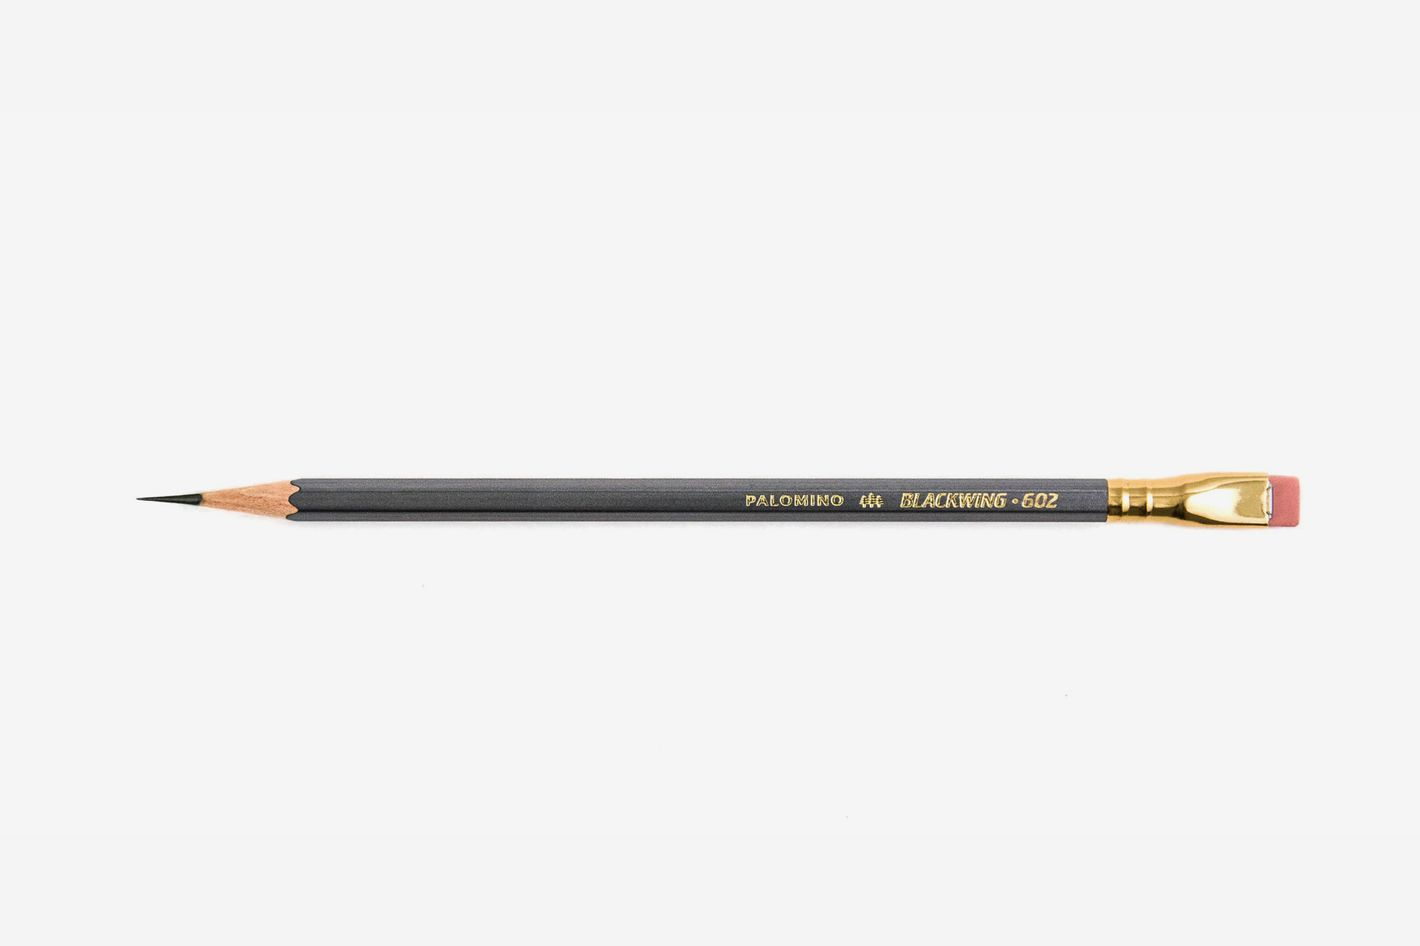 Palomino Blackwing 602 Pencils, 12-Pack